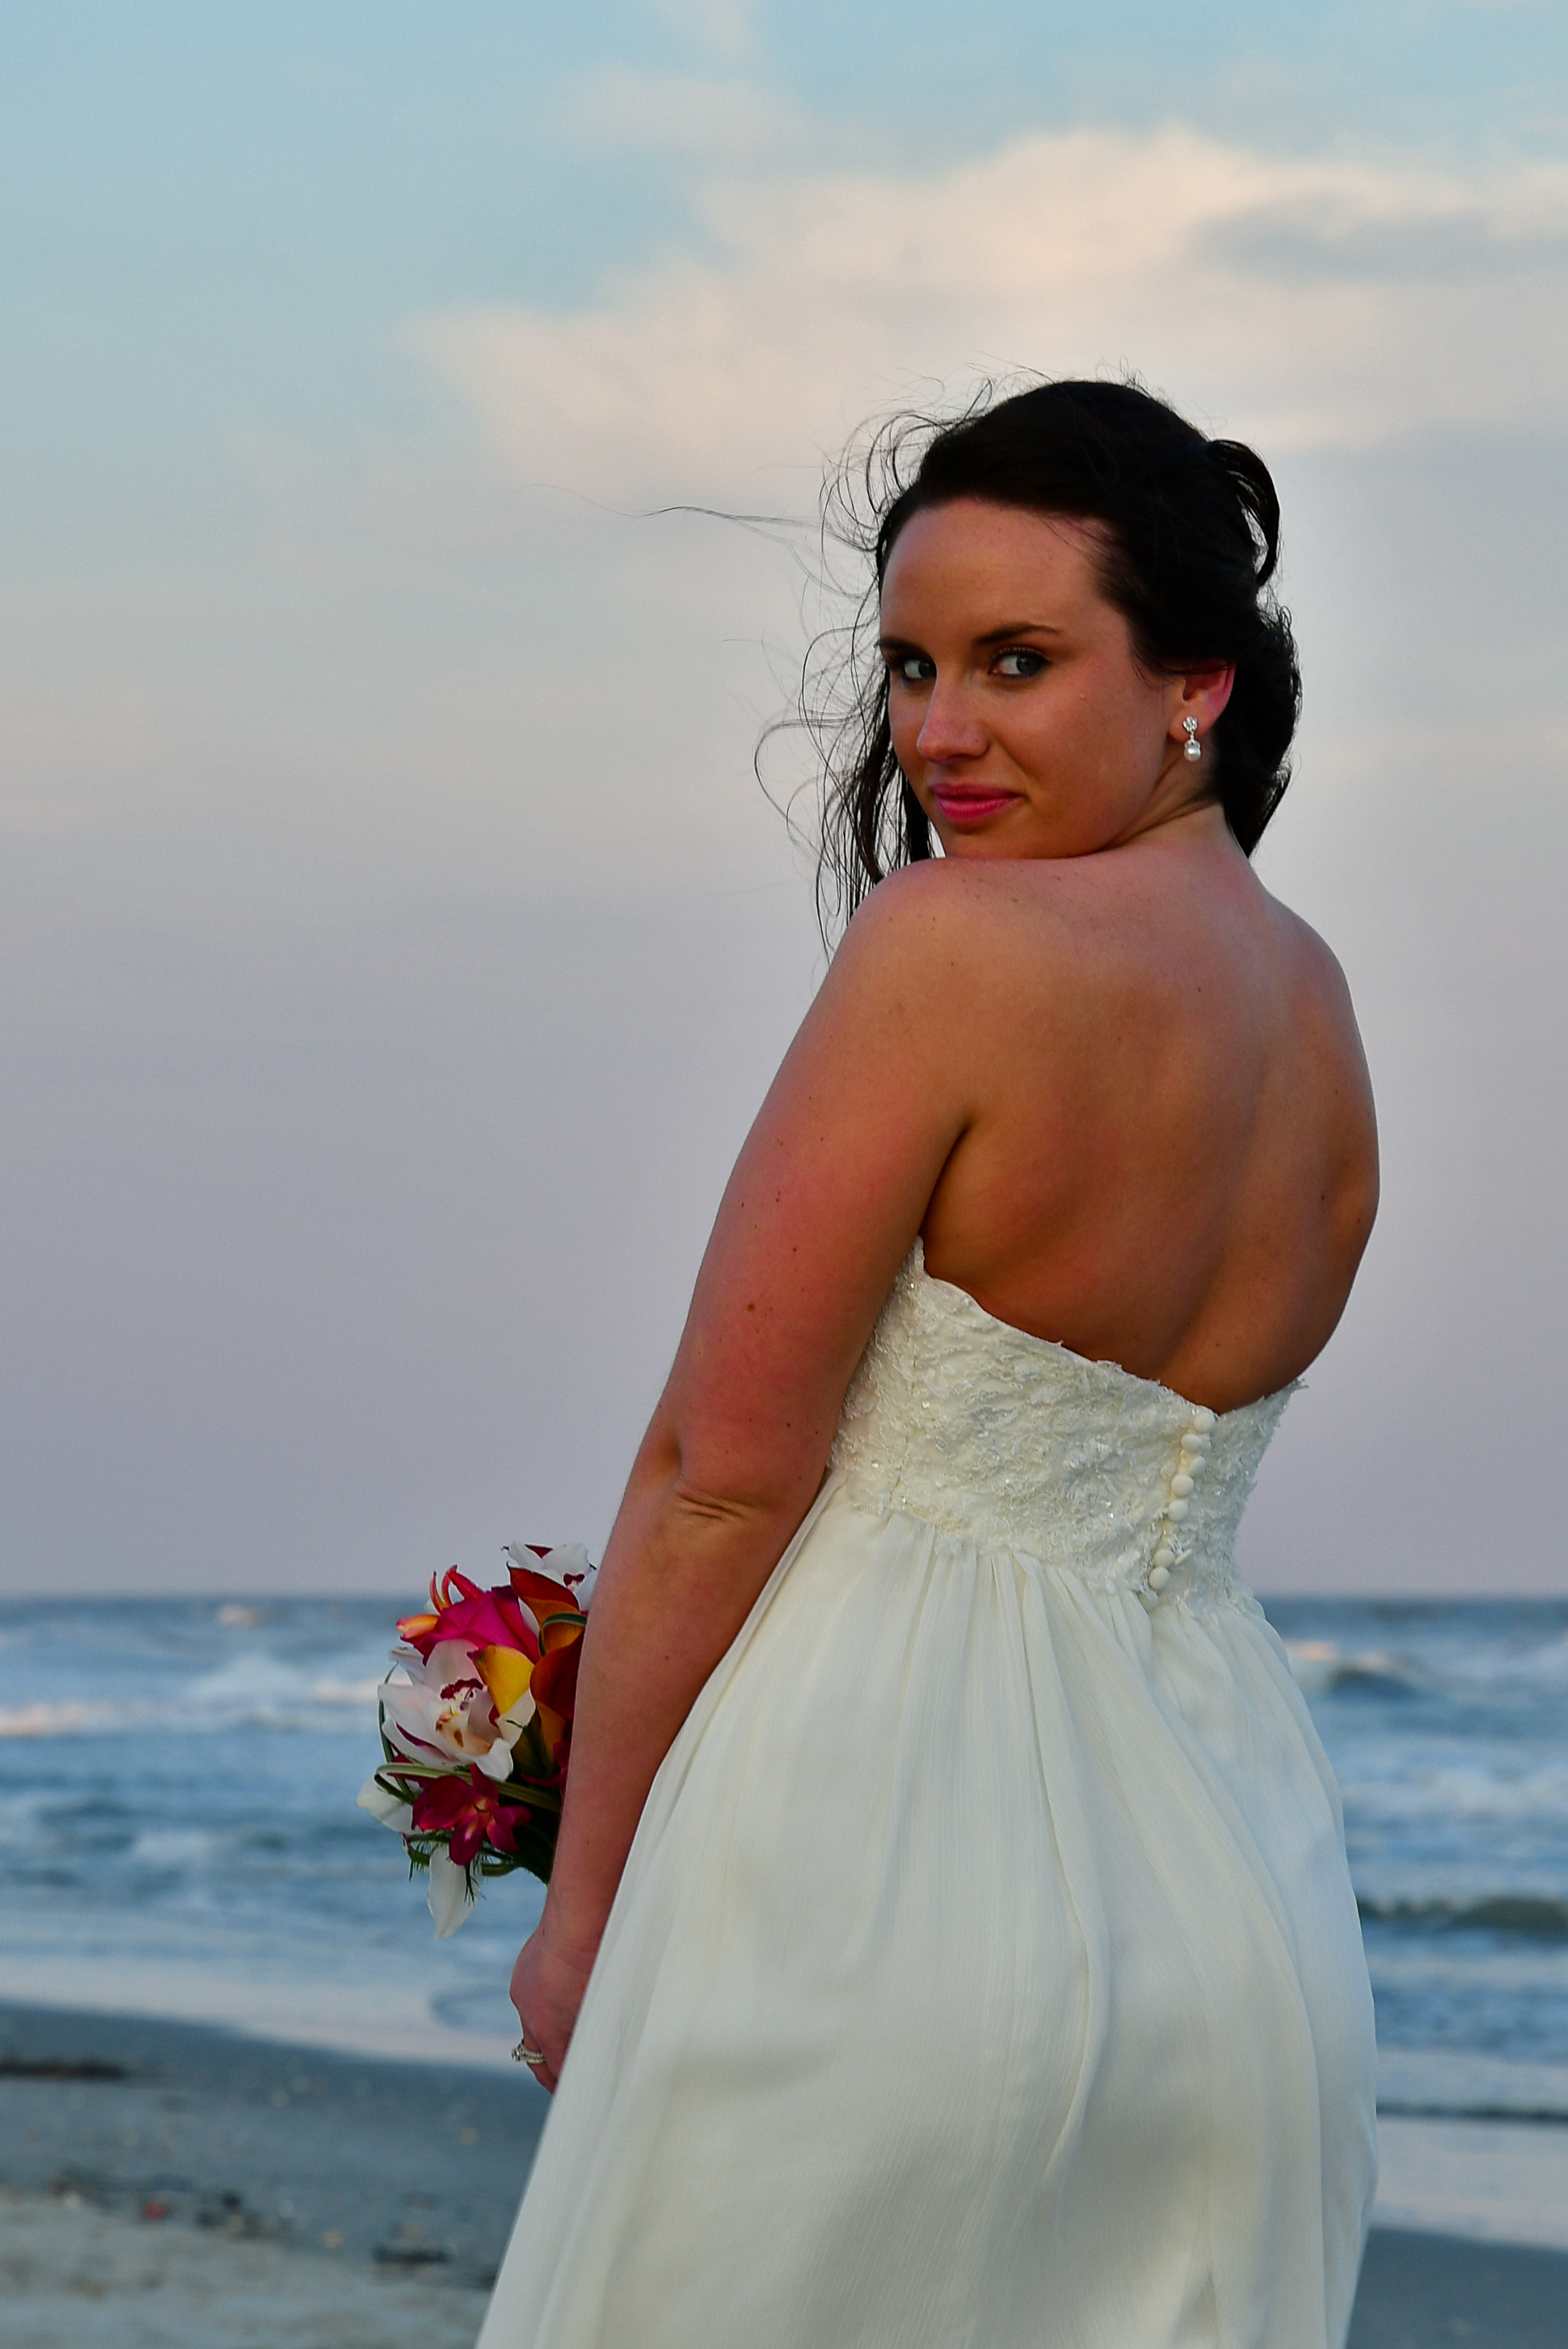 - Bride standing on the beach holding bouquet looking back at the camera.